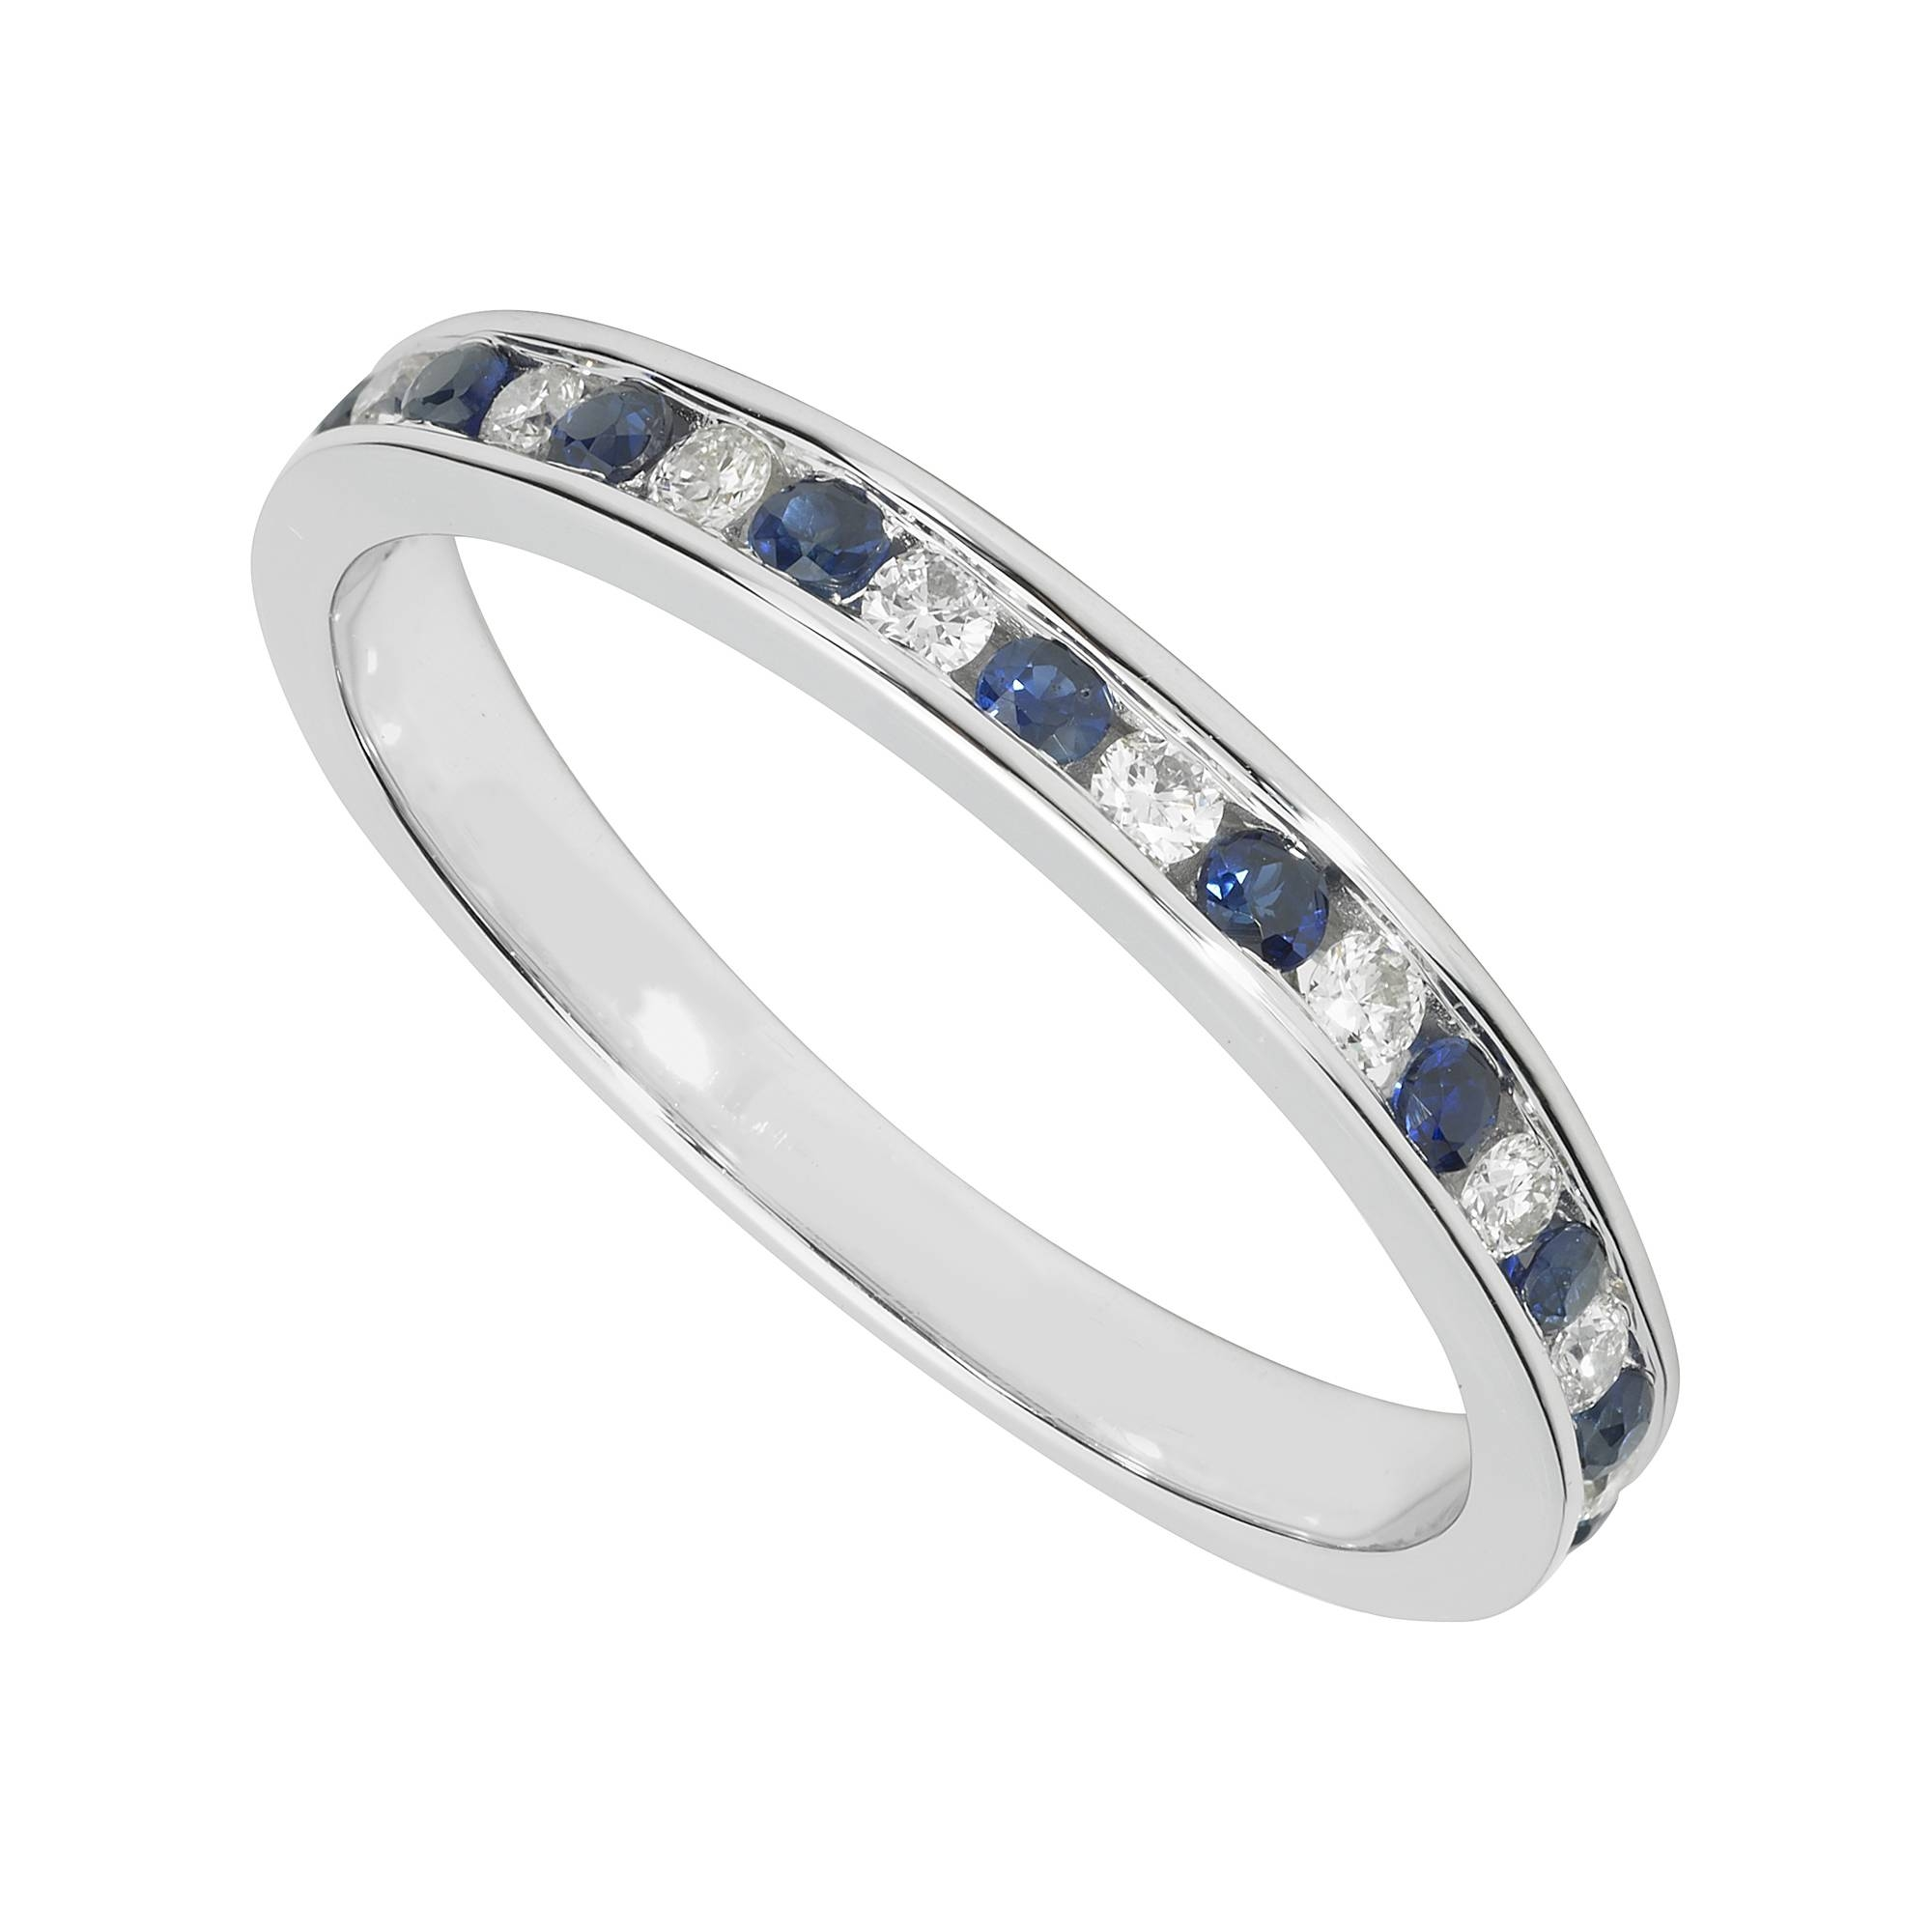 Ladies' 9Ct White Gold Diamond And Sapphire Wedding Ring Pertaining To Most Current Diamond And Sapphire Anniversary Rings (View 11 of 25)